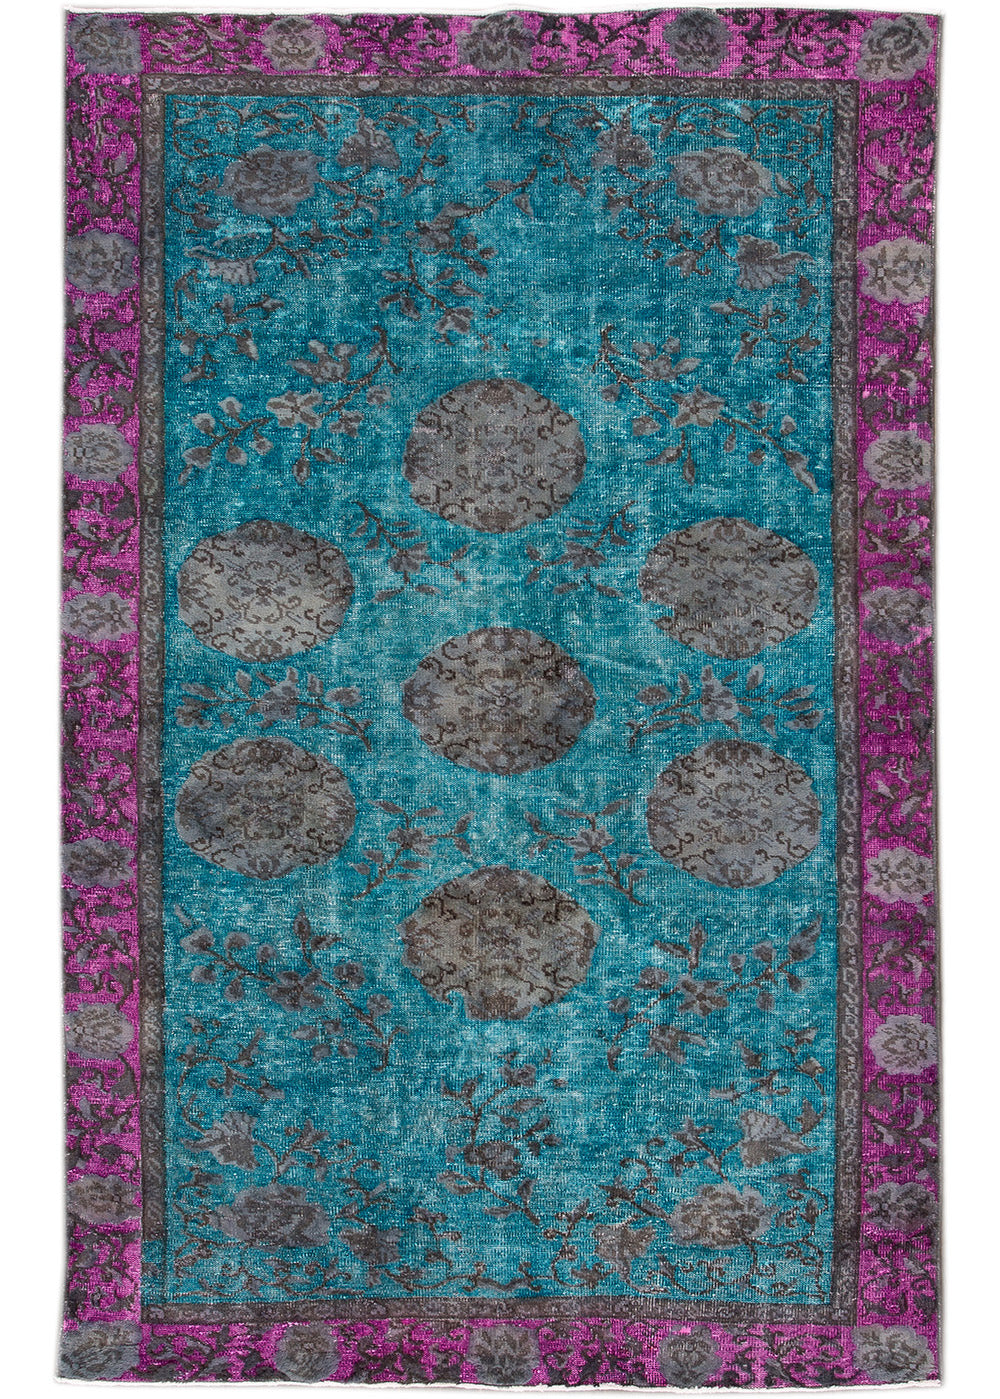 Turkish Rug, 6X9